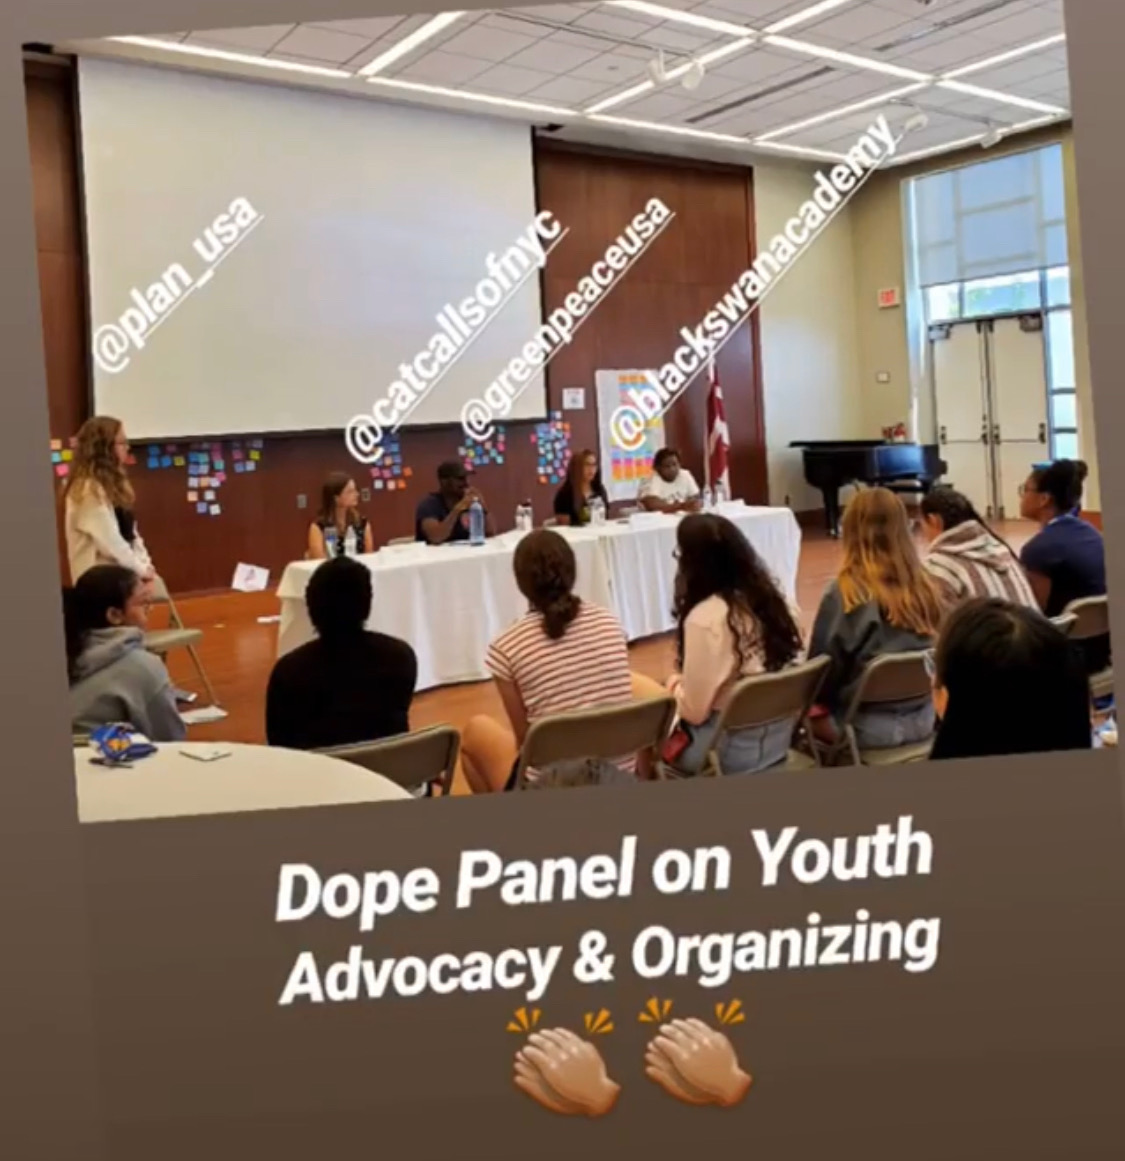 Sophie spoke on a panel on Youth Advocacy and Organizing about Catcalls of NYC put on by Plan International in Washington, DC.